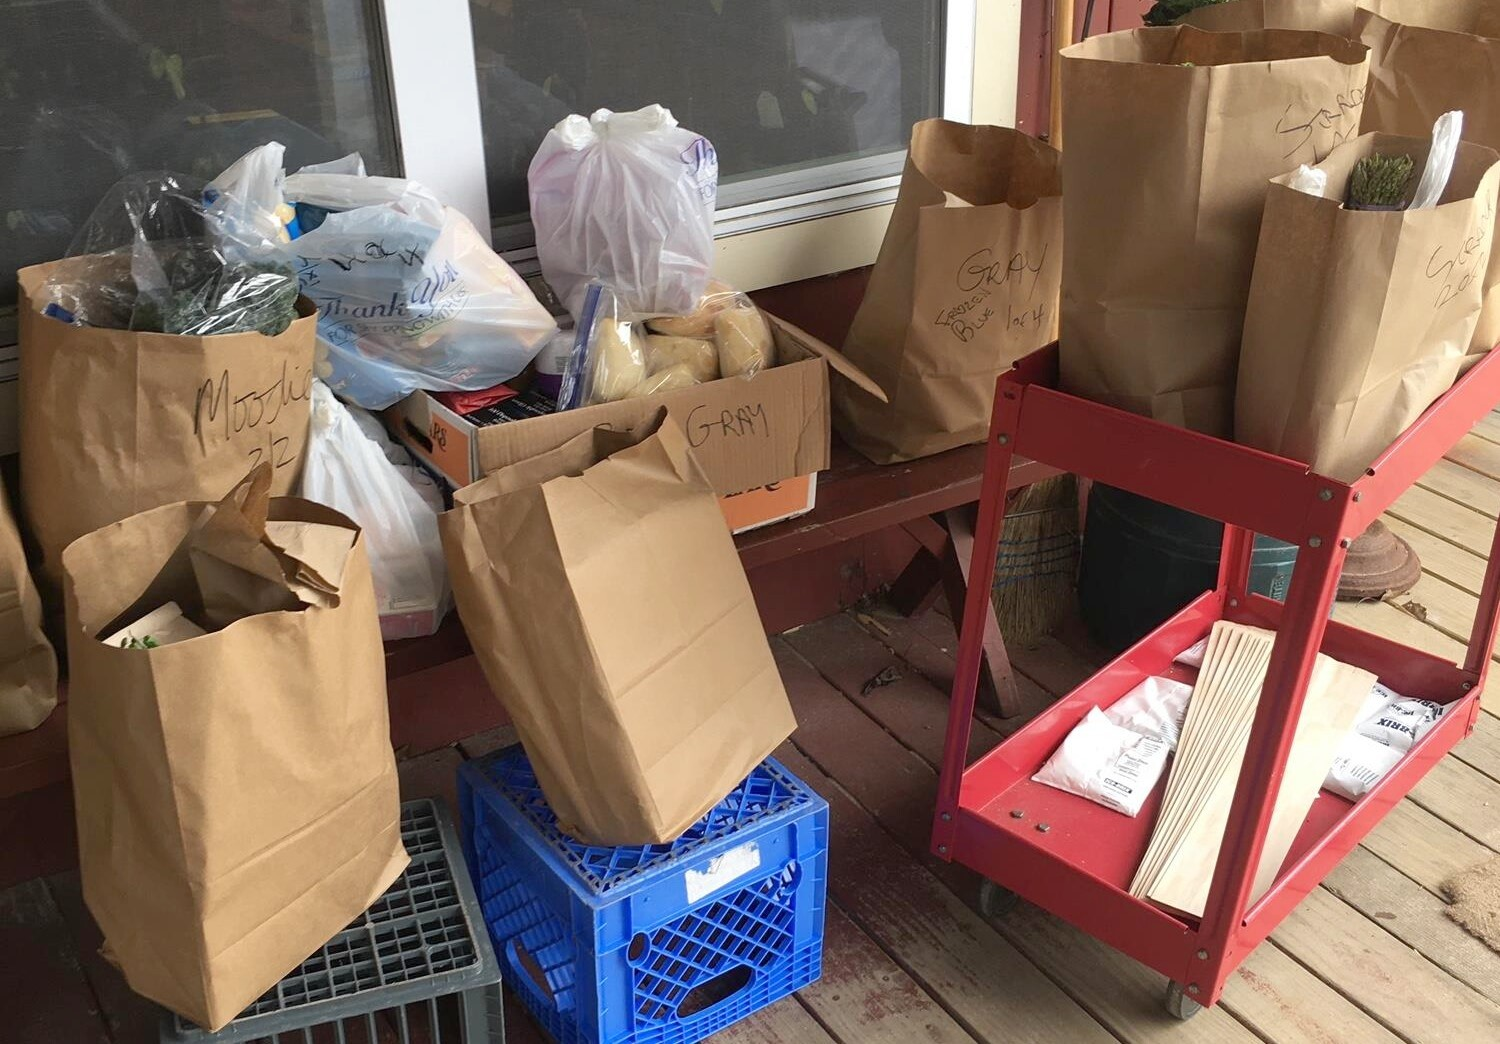 Bags of groceries waiting on the porch. Photo: courtesy Vickie Sandiford